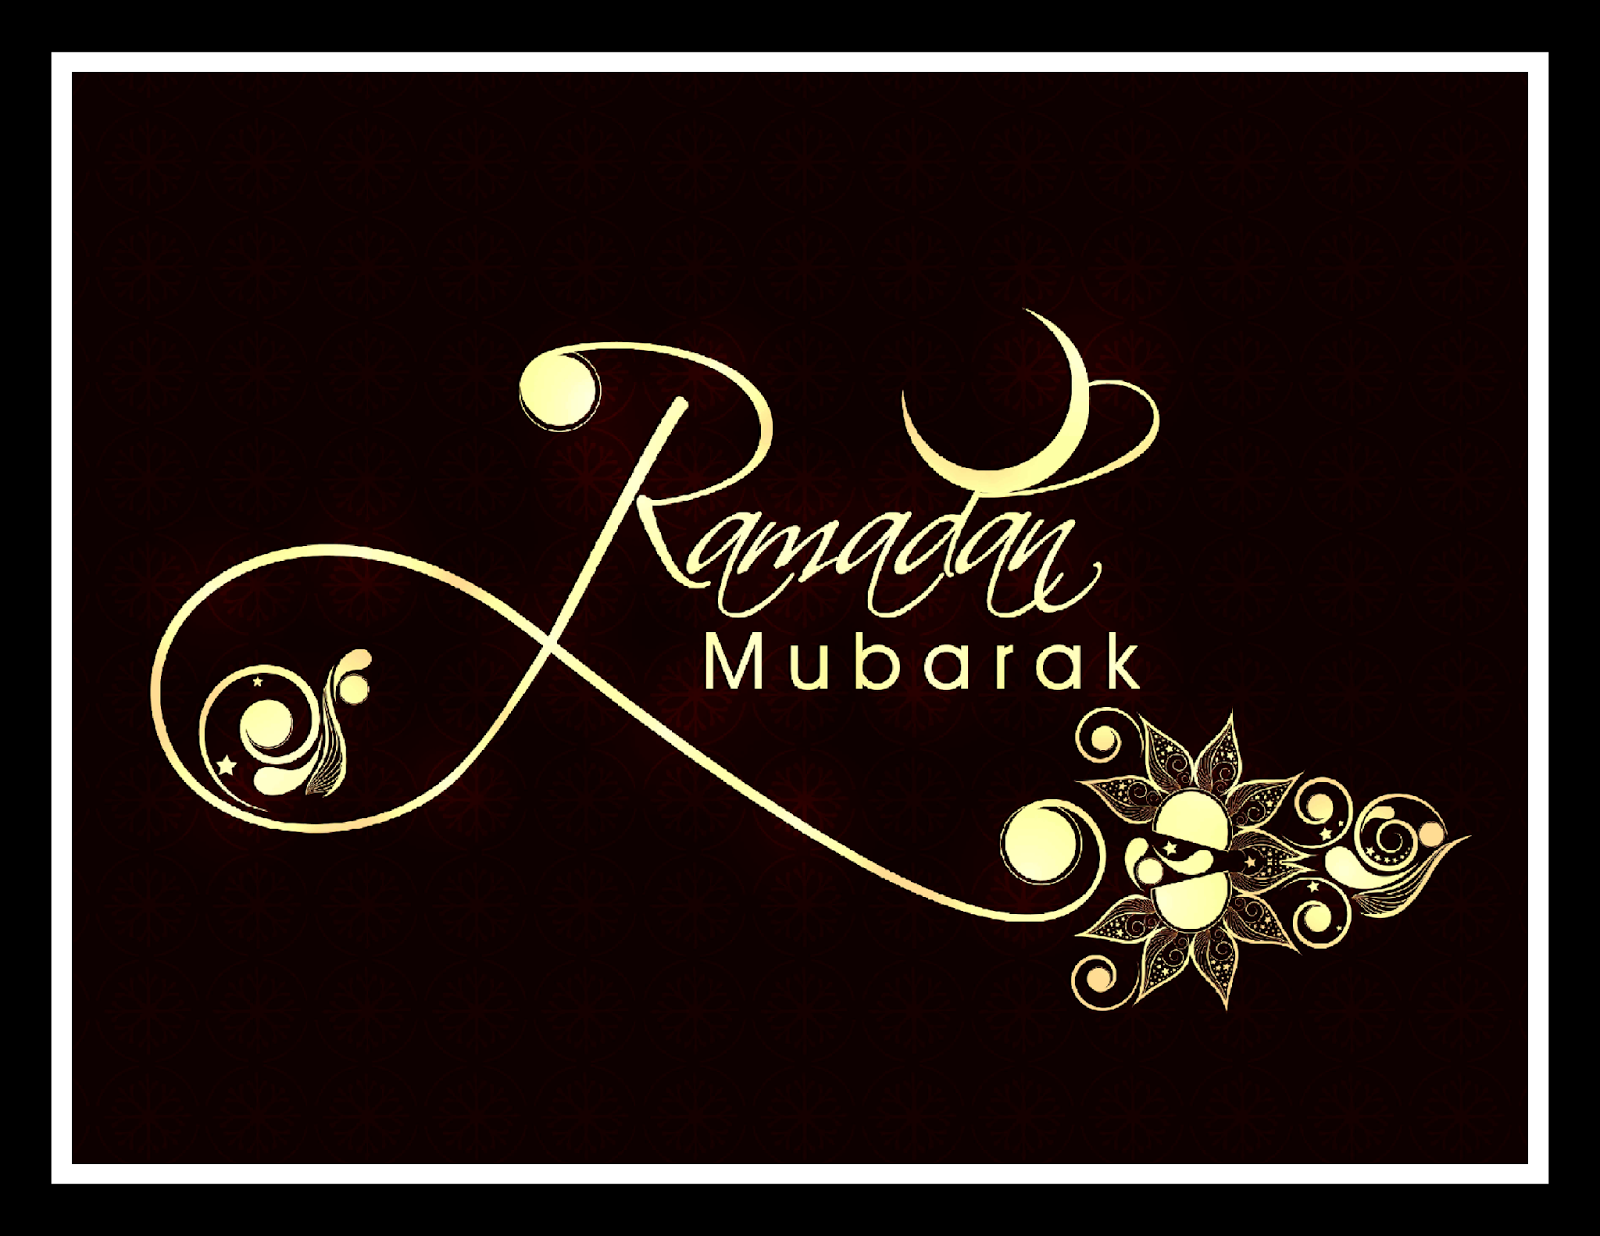 Hd wallpaper ramzan mubarak - Ramadan Mubarak Hd Images